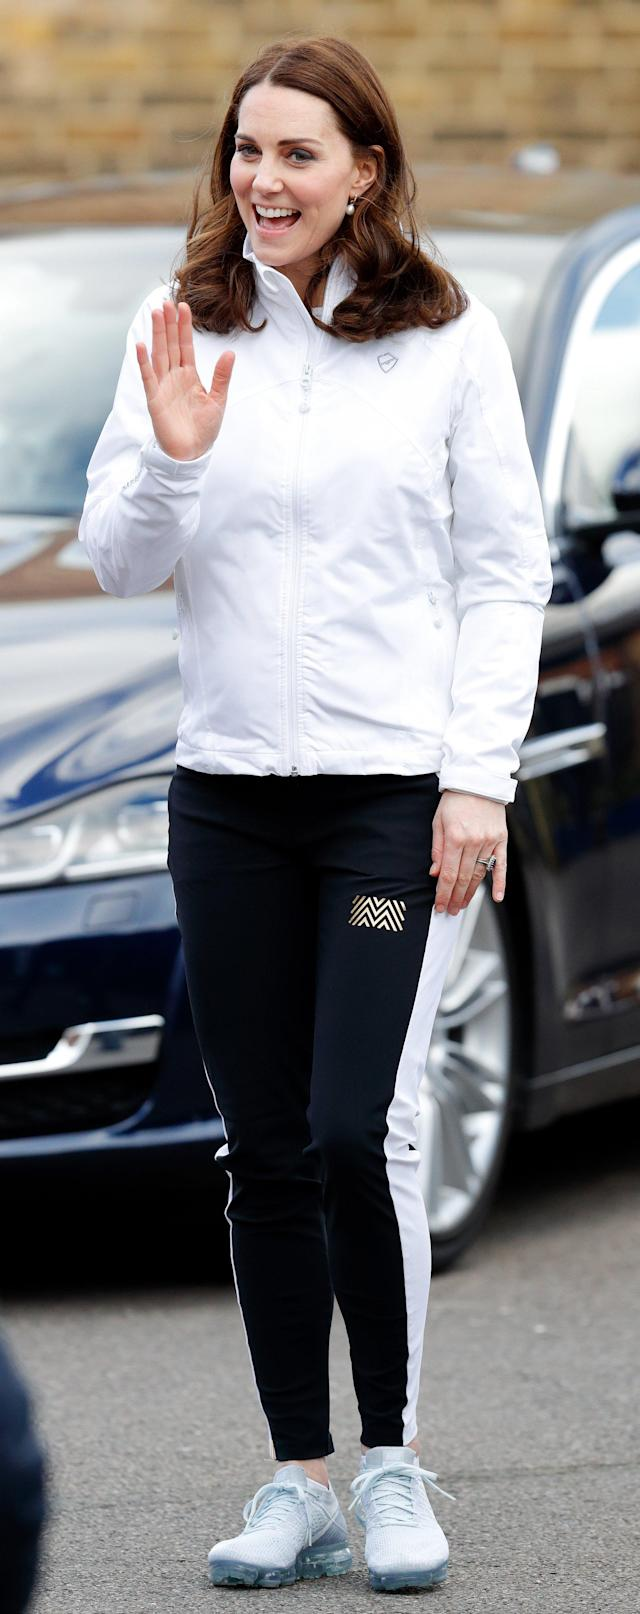 Kate looked ready to play in silver sneakers, athletic pants and a white windbreaker at the Wimbledon Junior Tennis Initiative in Jan. 2018.